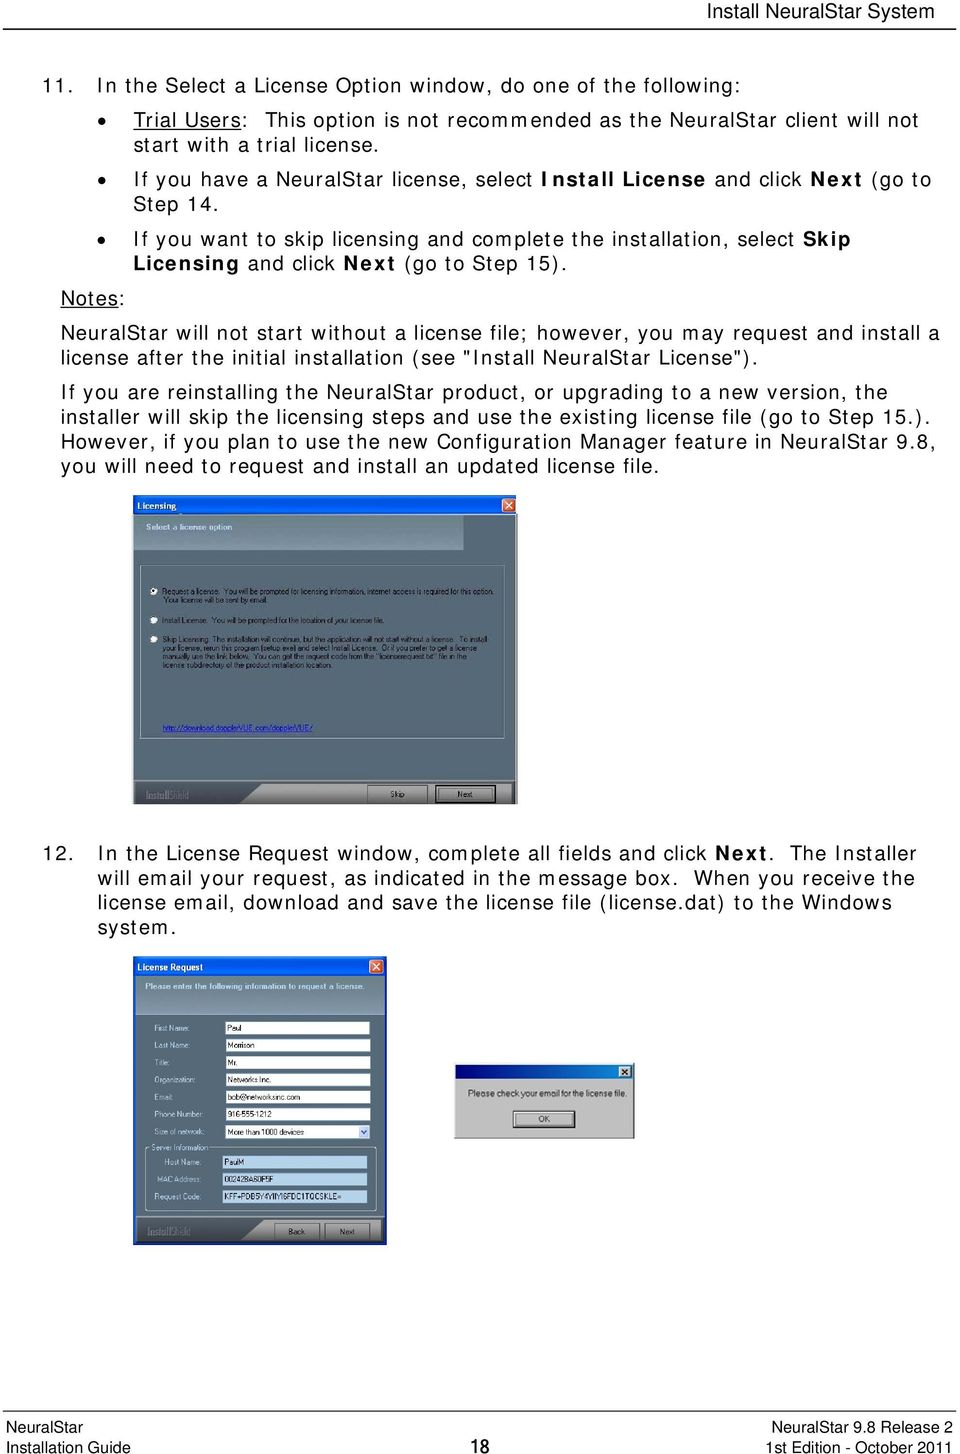 If you have a NeuralStar license, select Install License and click Next (go to Step 14.